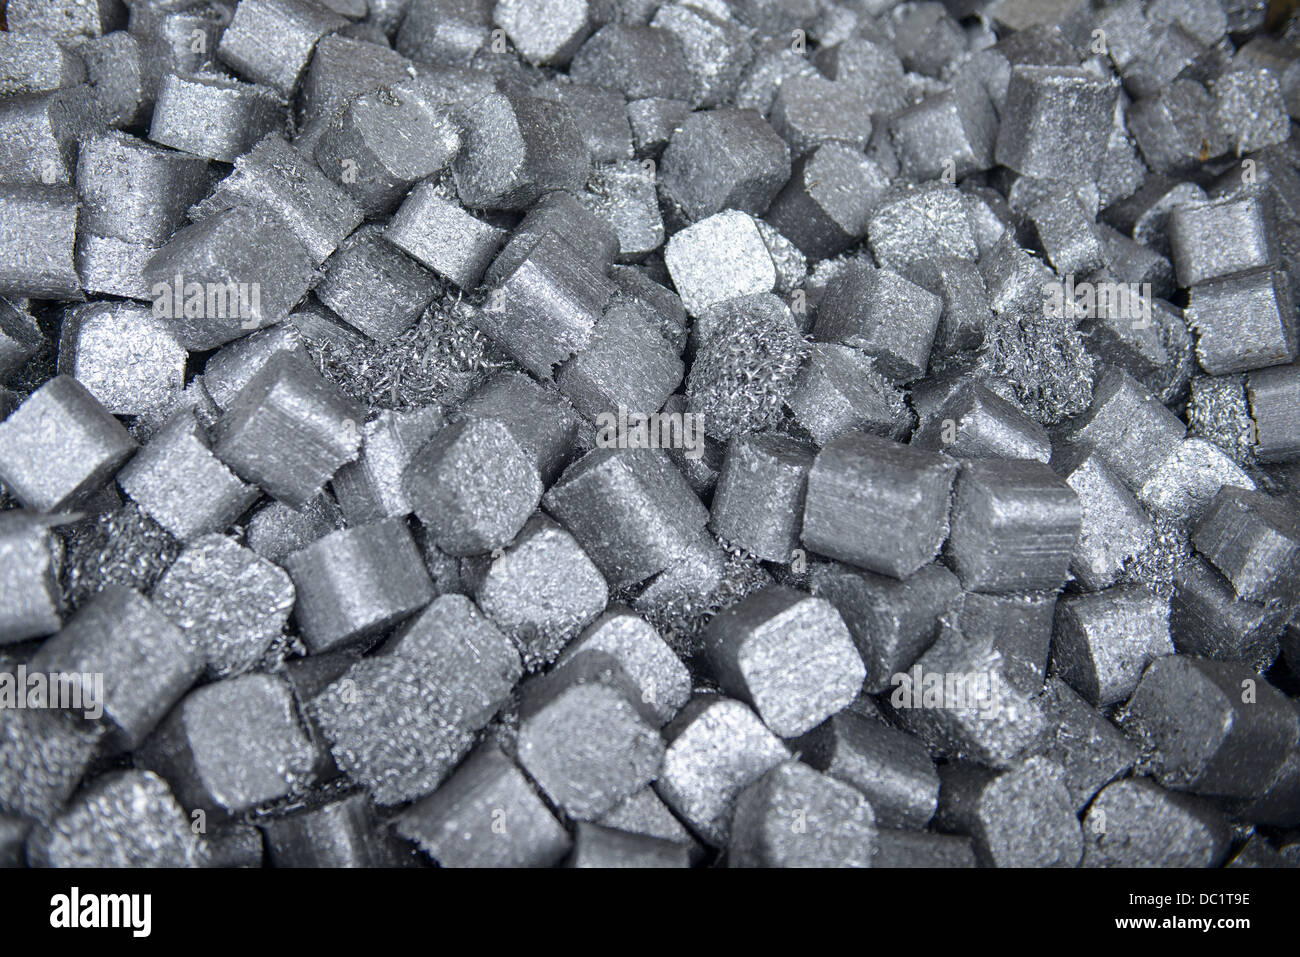 Random stack of cube shaped aluminum products - Stock Image